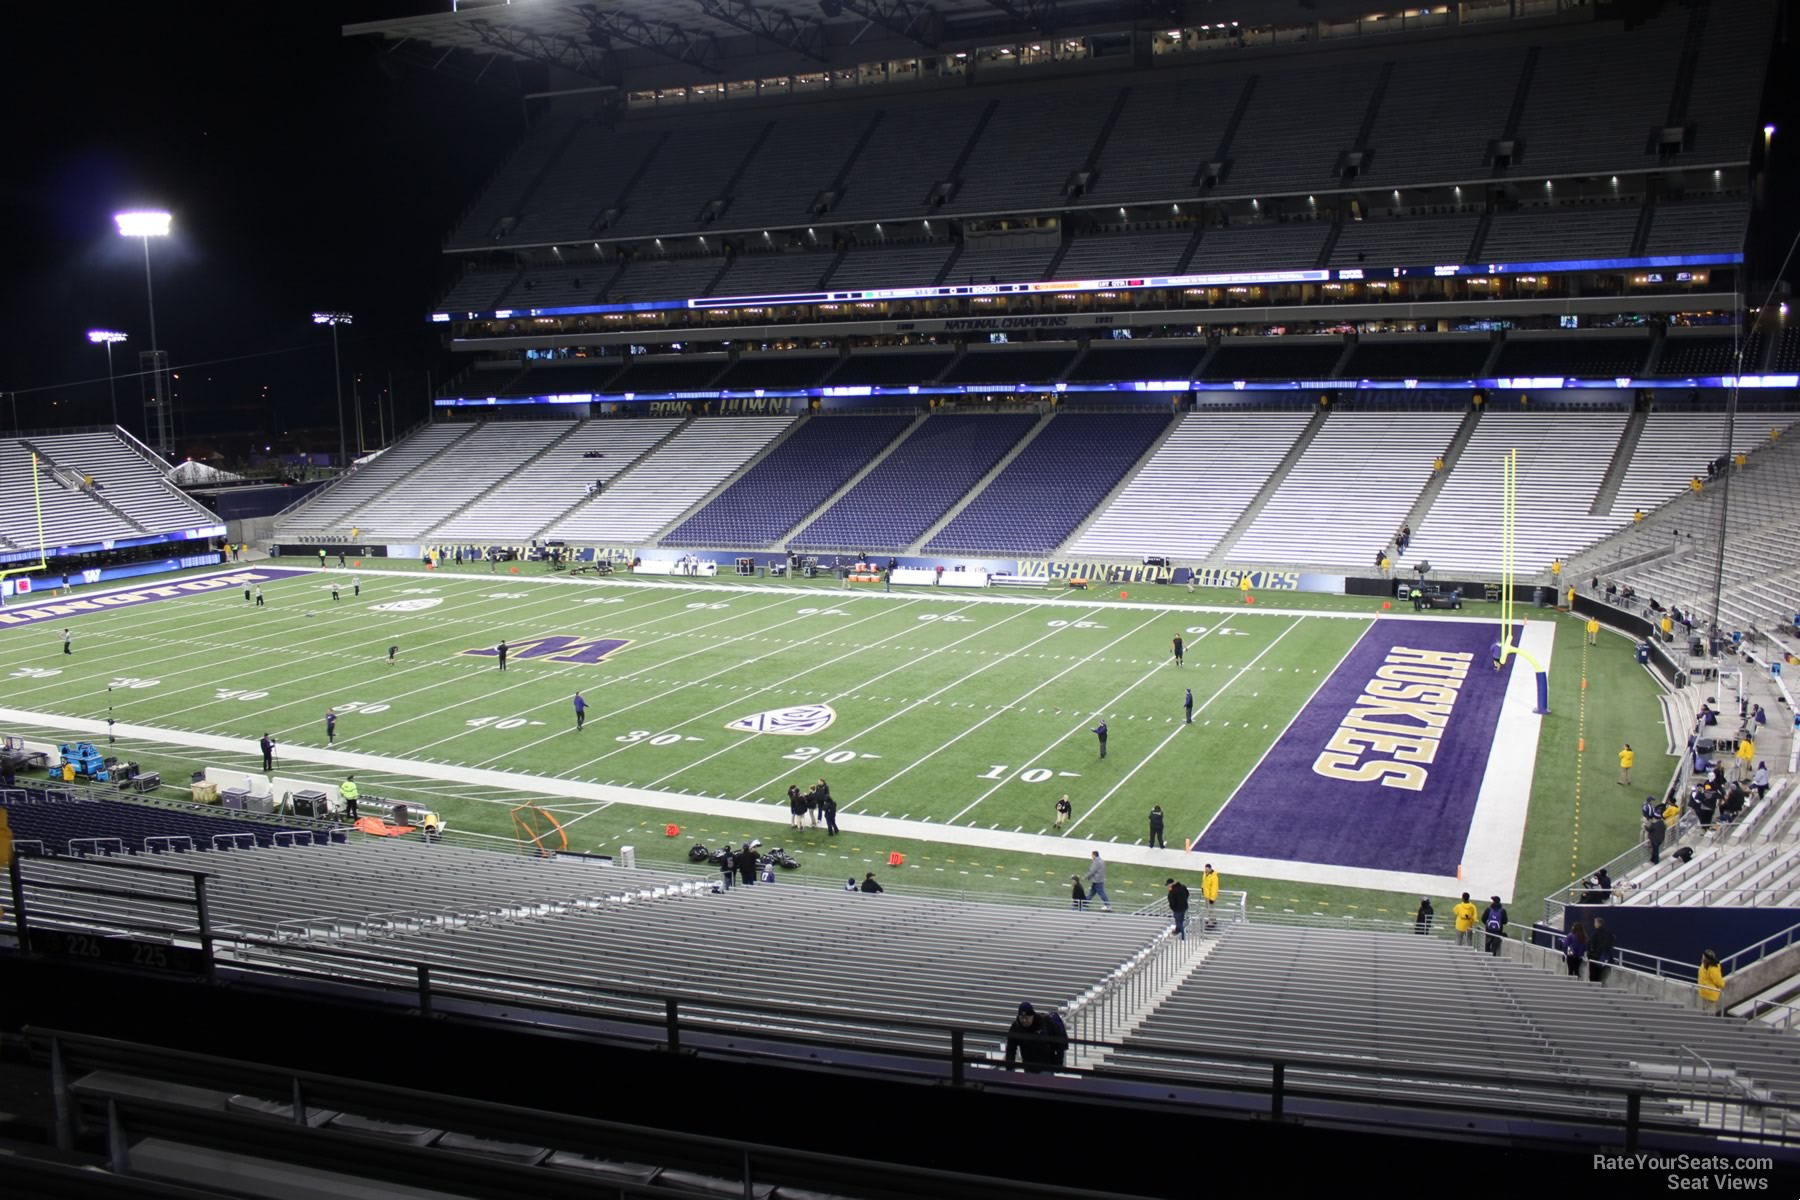 Seat View for Husky Stadium Section 225, Row 8